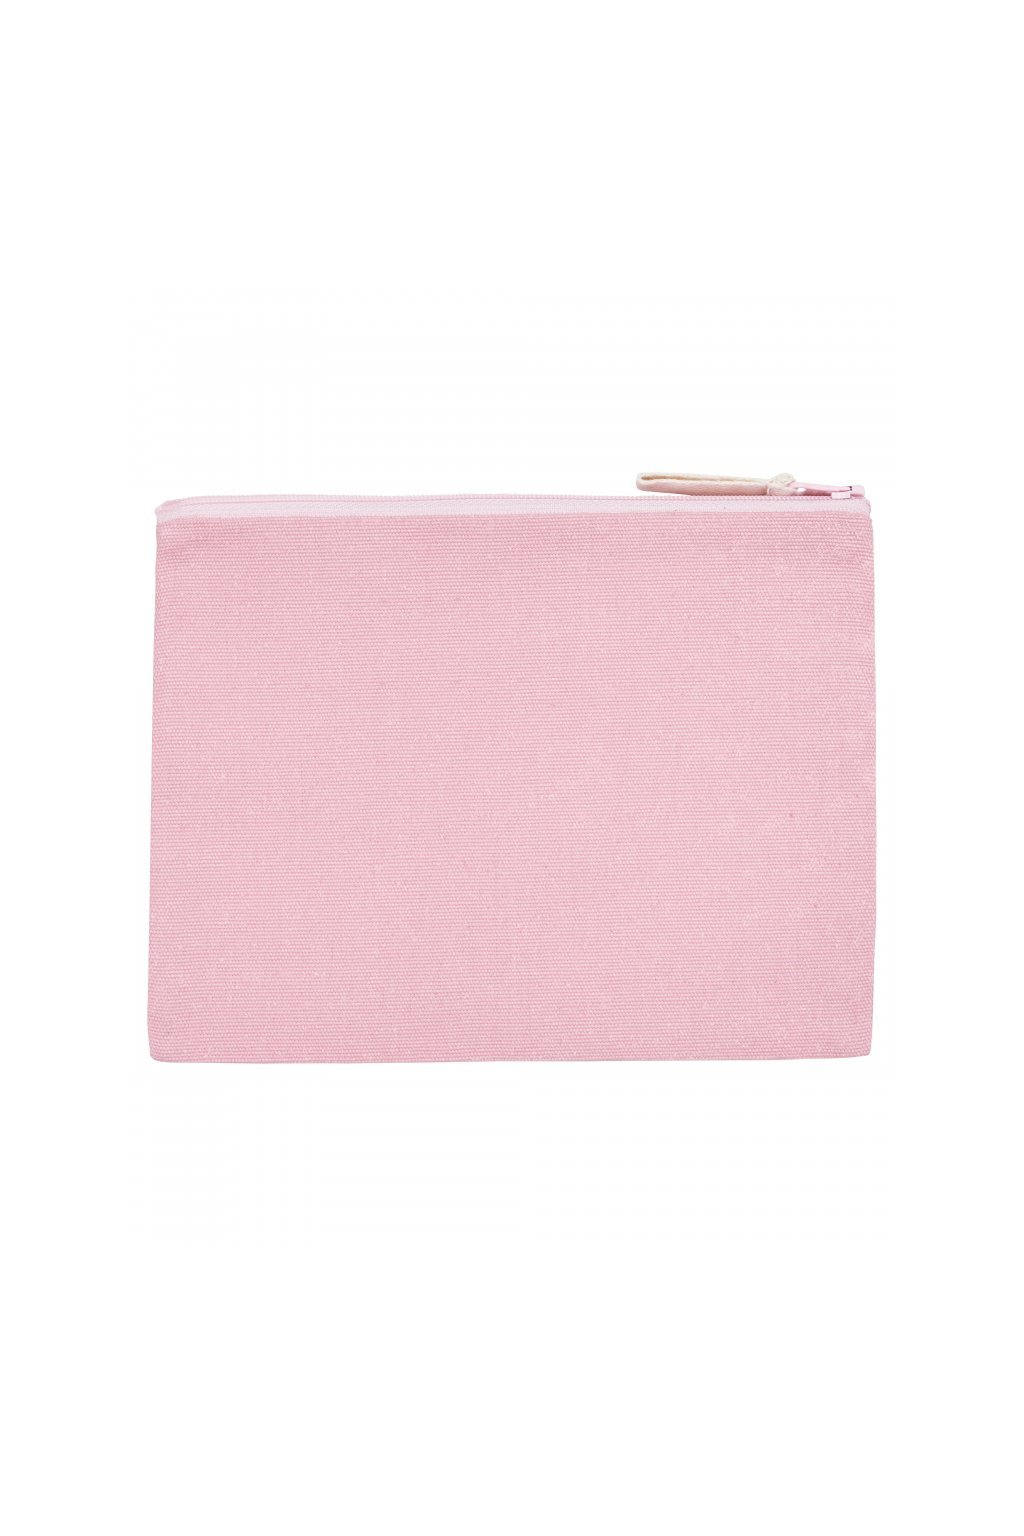 7214 pencil case cotton pink packshot front main 0